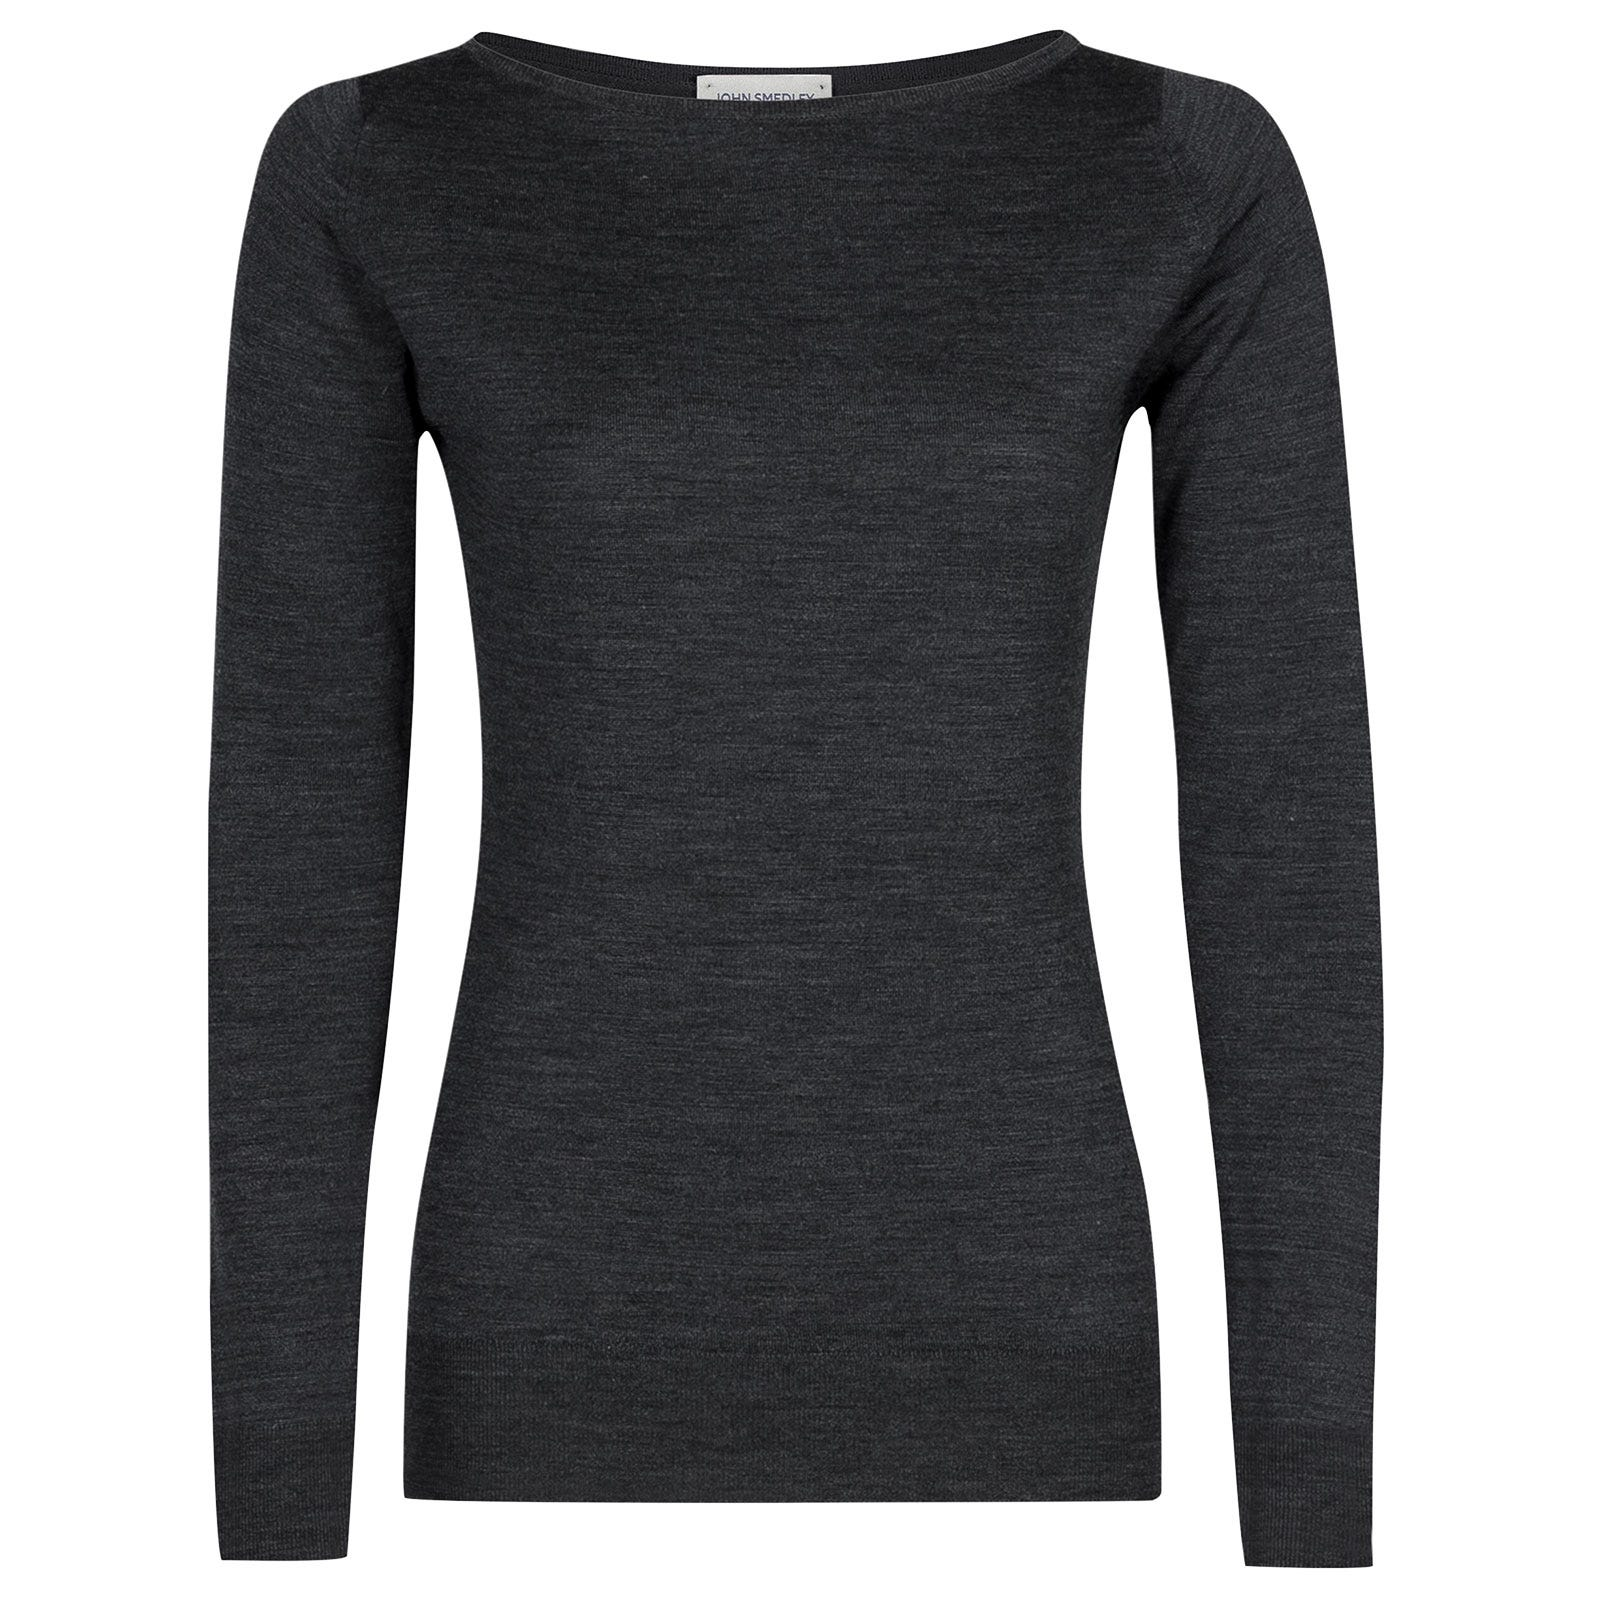 John Smedley susan Merino Wool Sweater in Charcoal-L